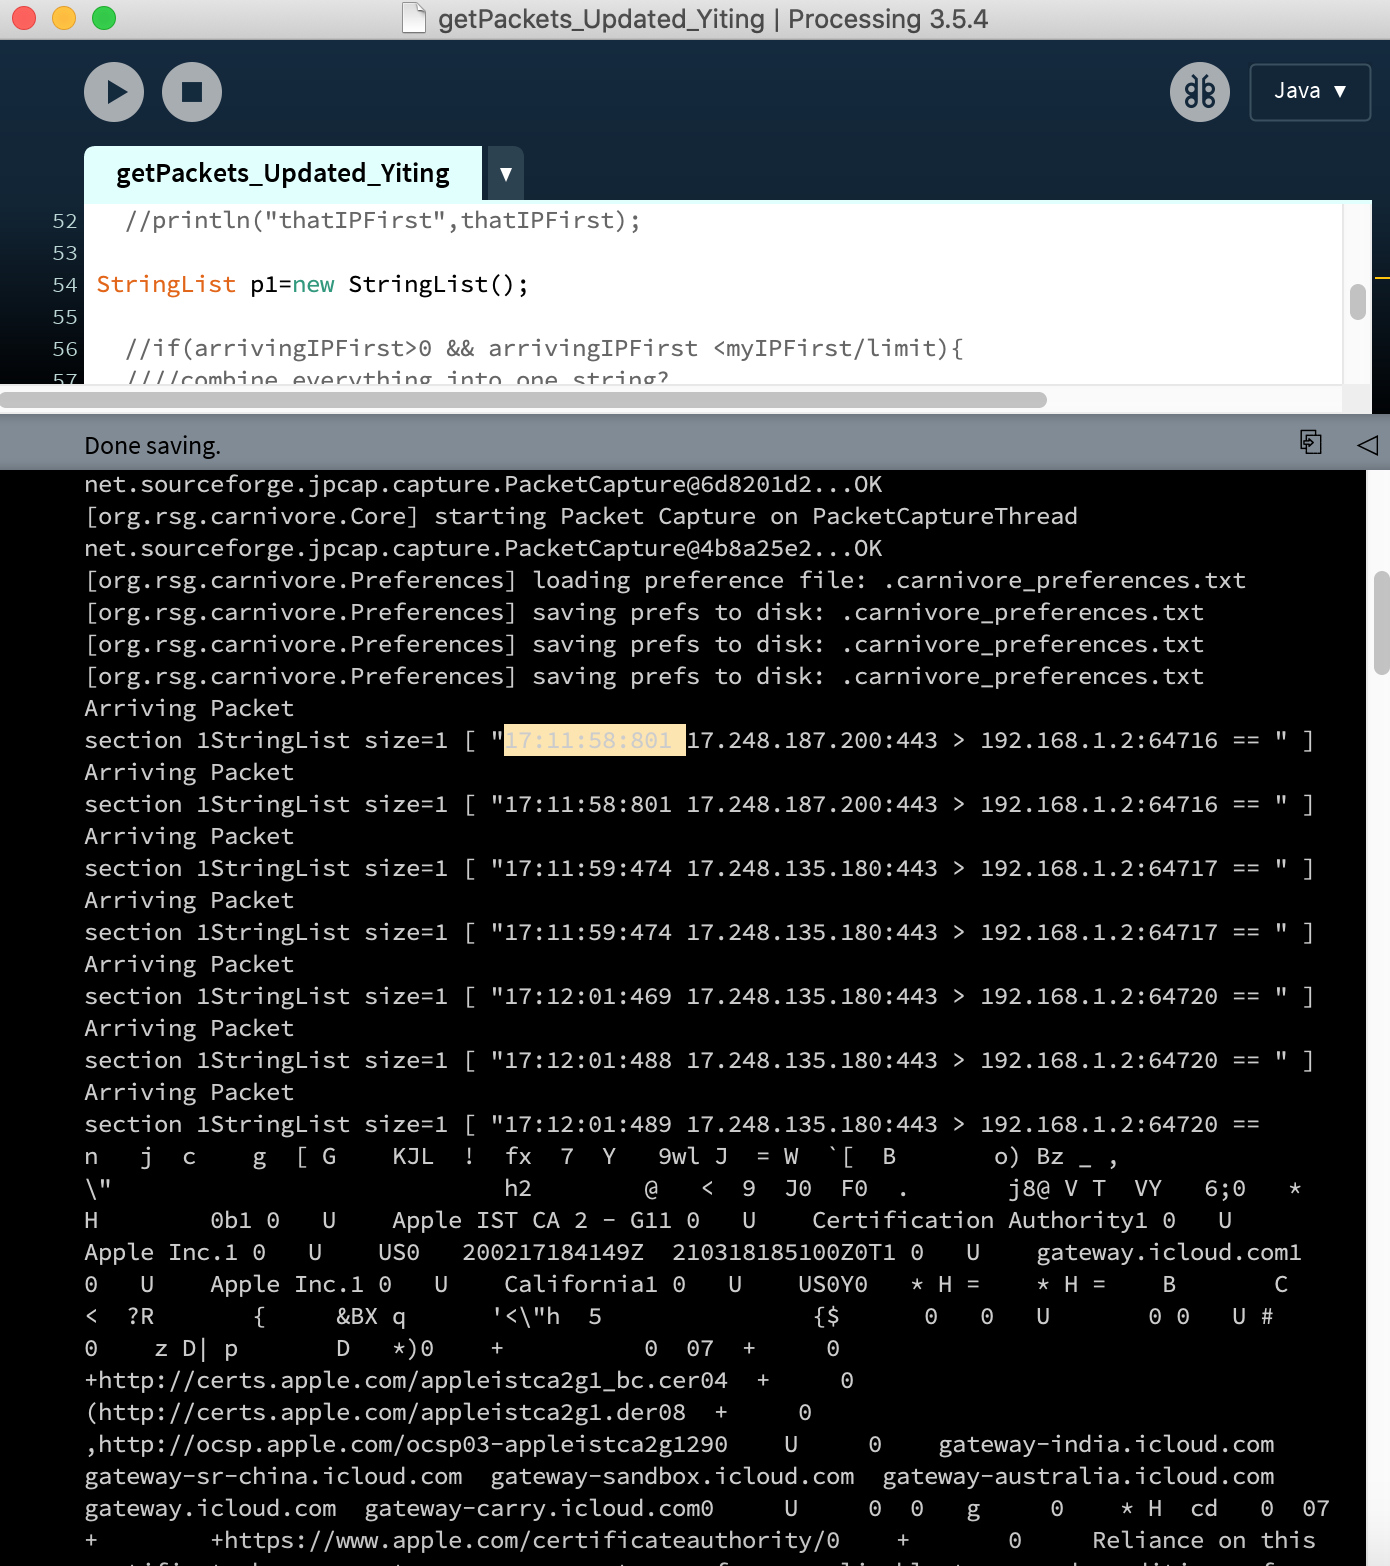 screenshot of processing getting packets from server using Carnivore library.